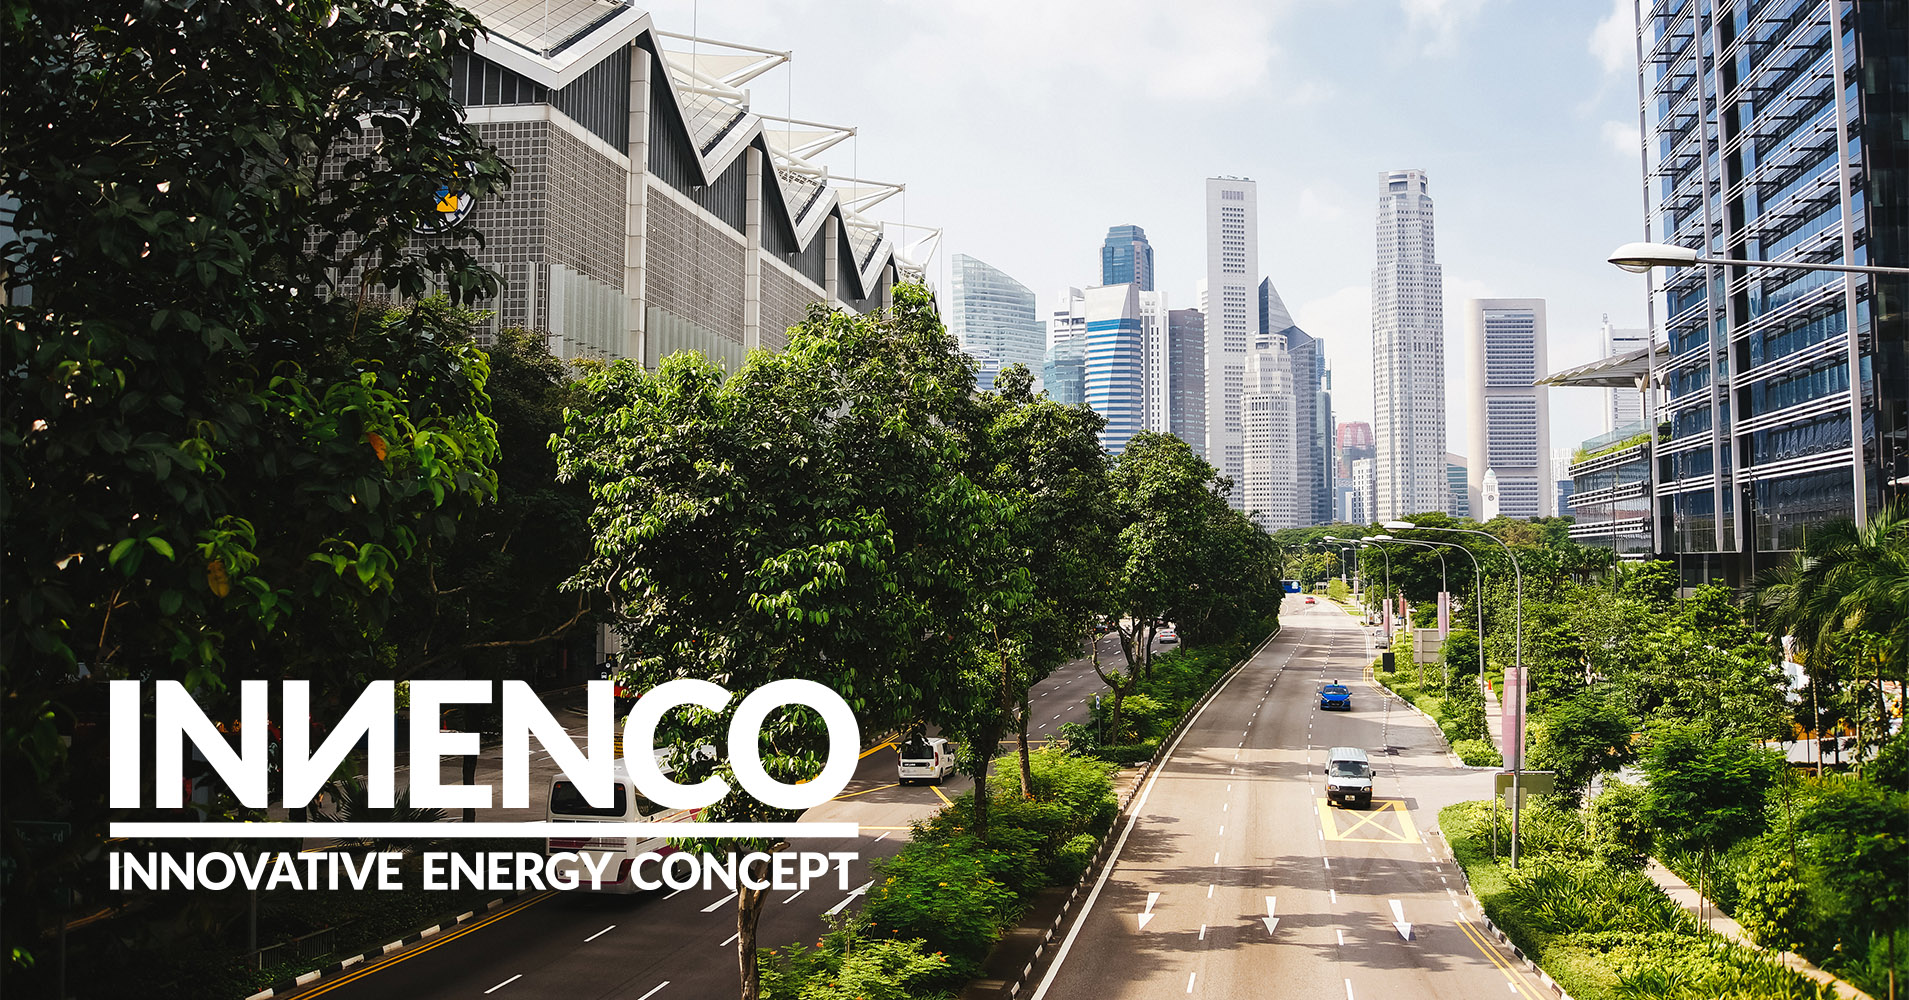 Innenco Innovative Energy Concept Viable Cities Enco Wiring Diagram Single Phase